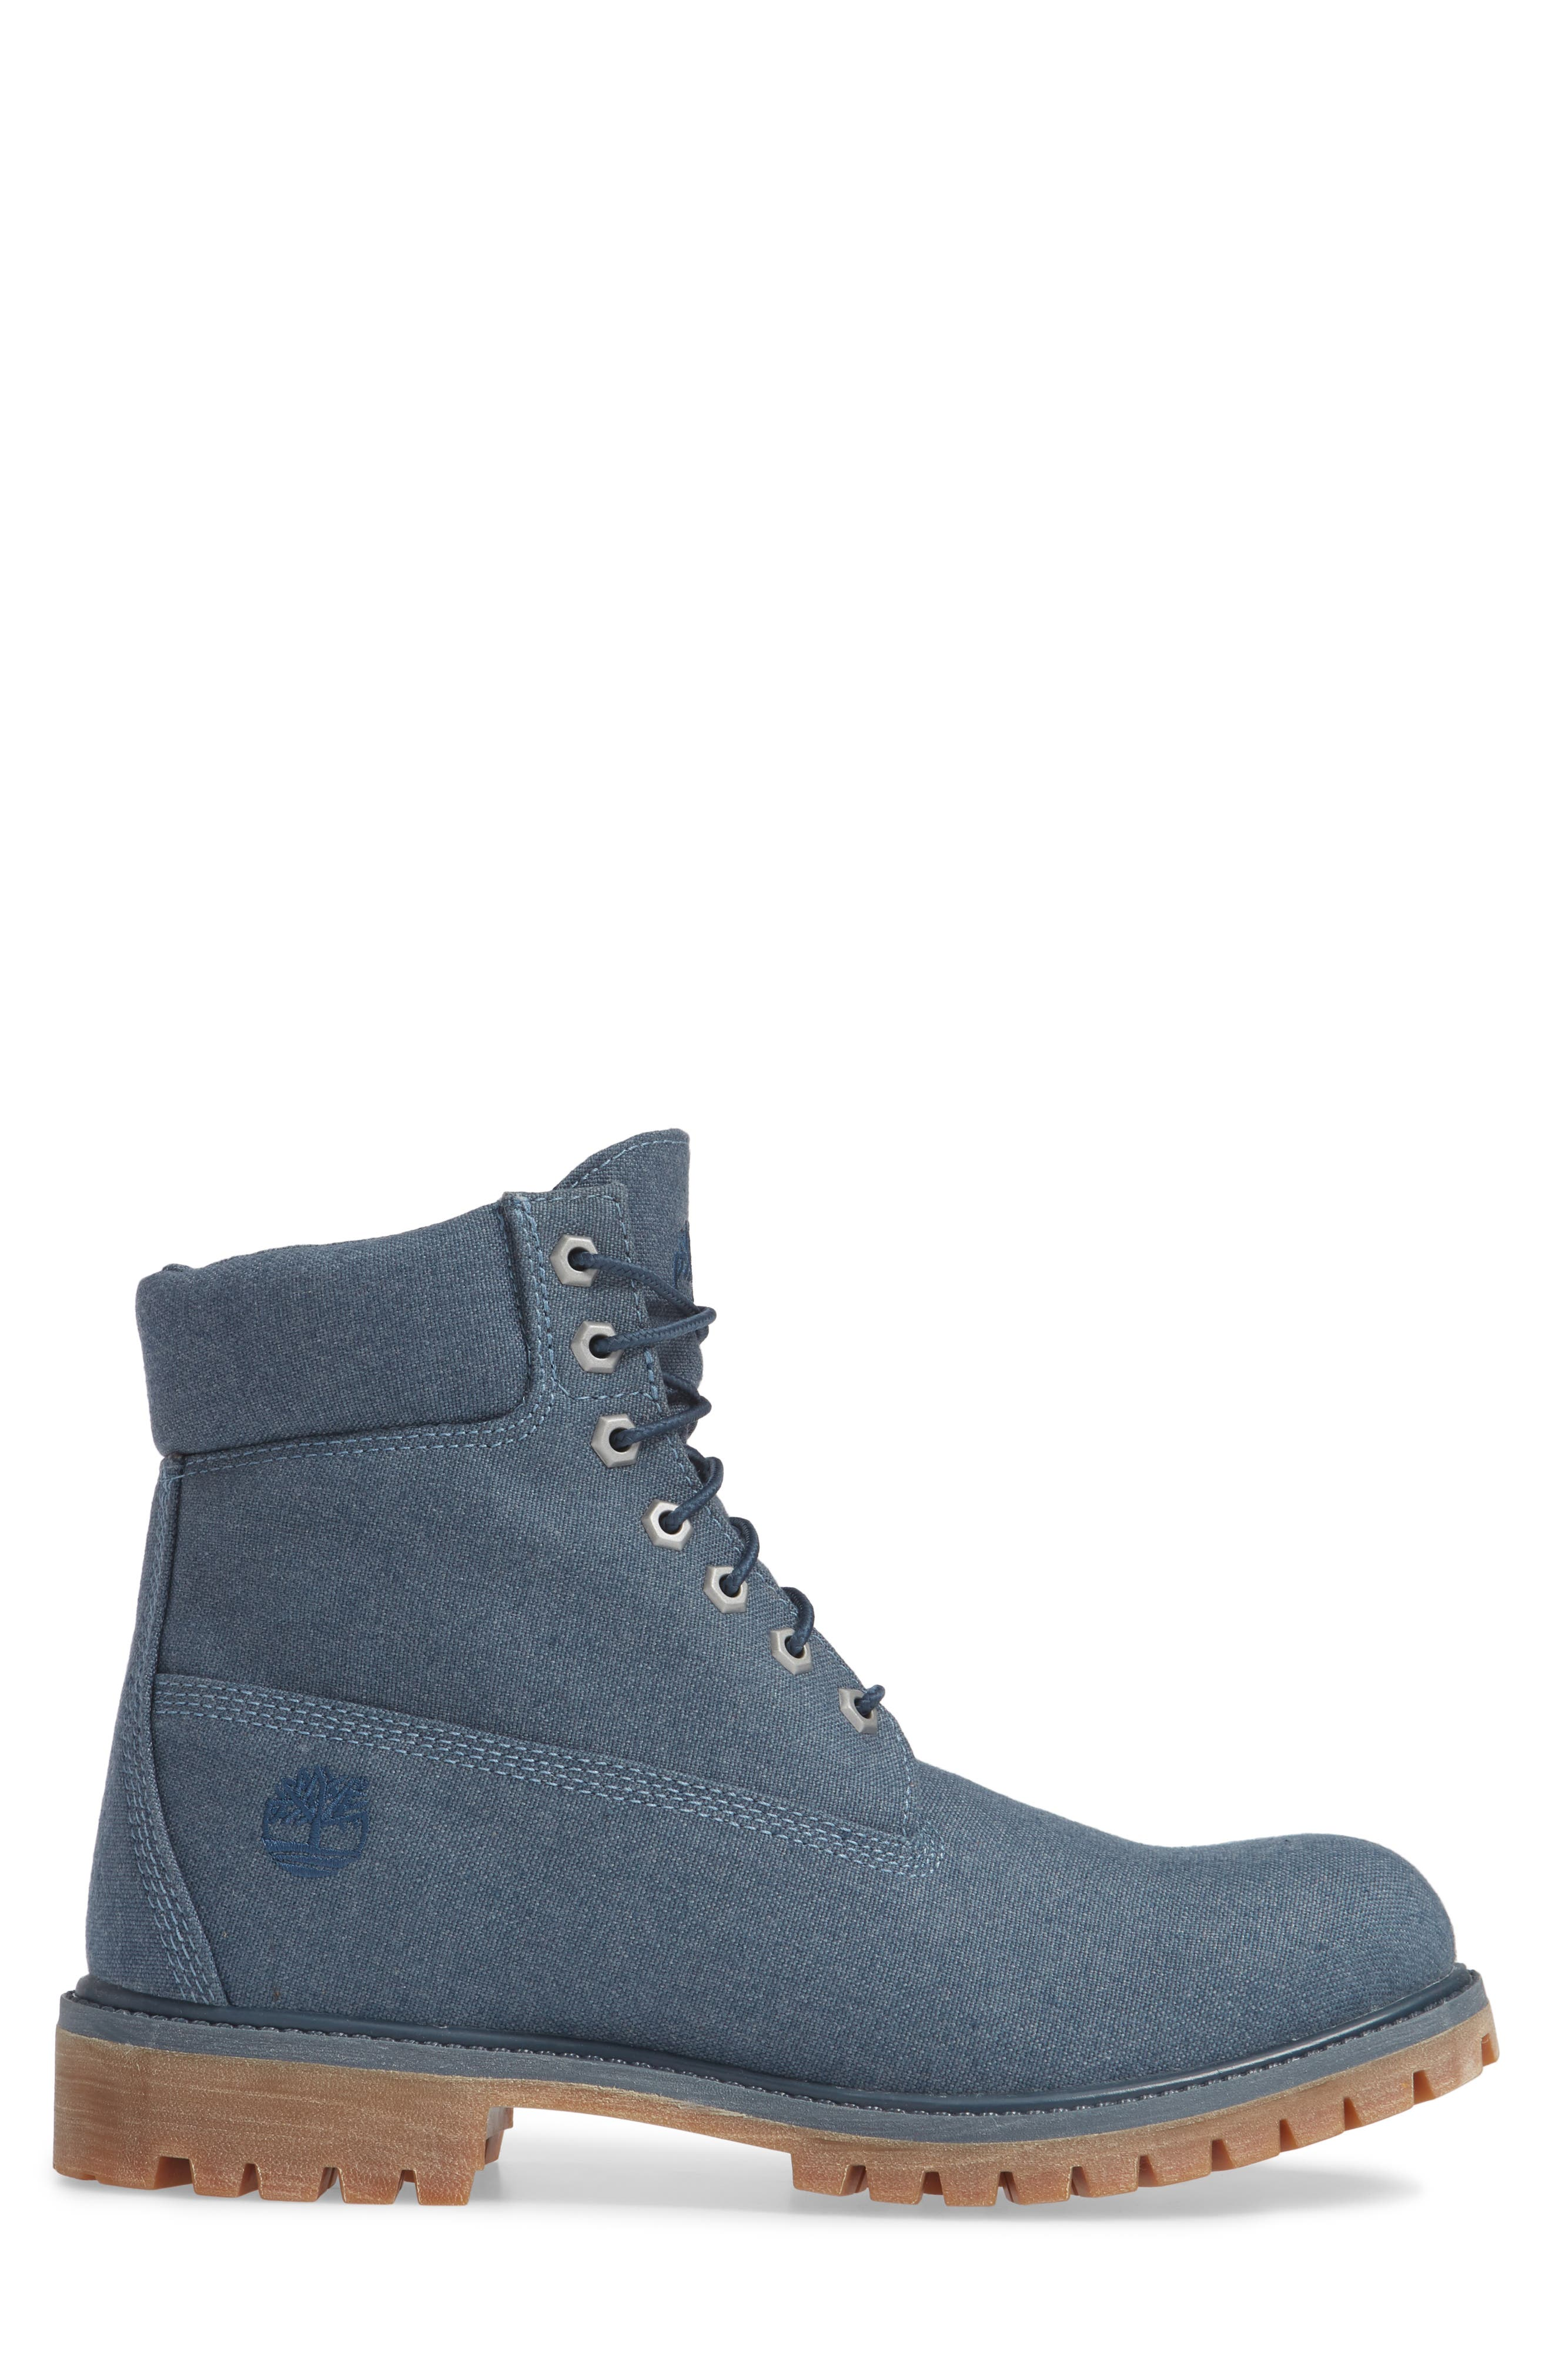 Premium Plain Toe Boot,                             Alternate thumbnail 3, color,                             MIDNIGHT NAVY THREAD